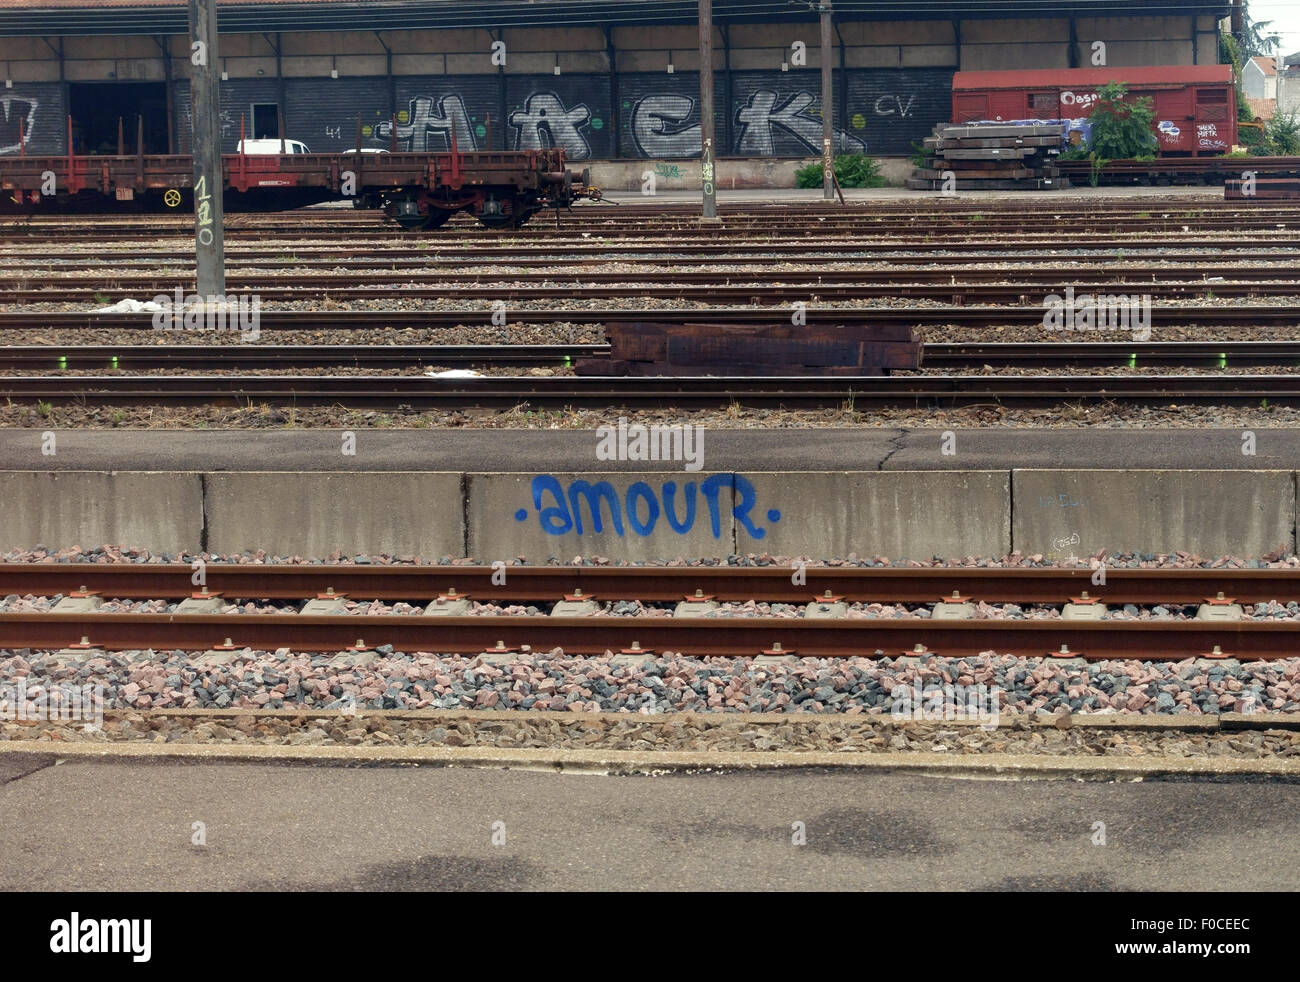 'Amour' ('love') graffito at French railway station, France - Stock Image